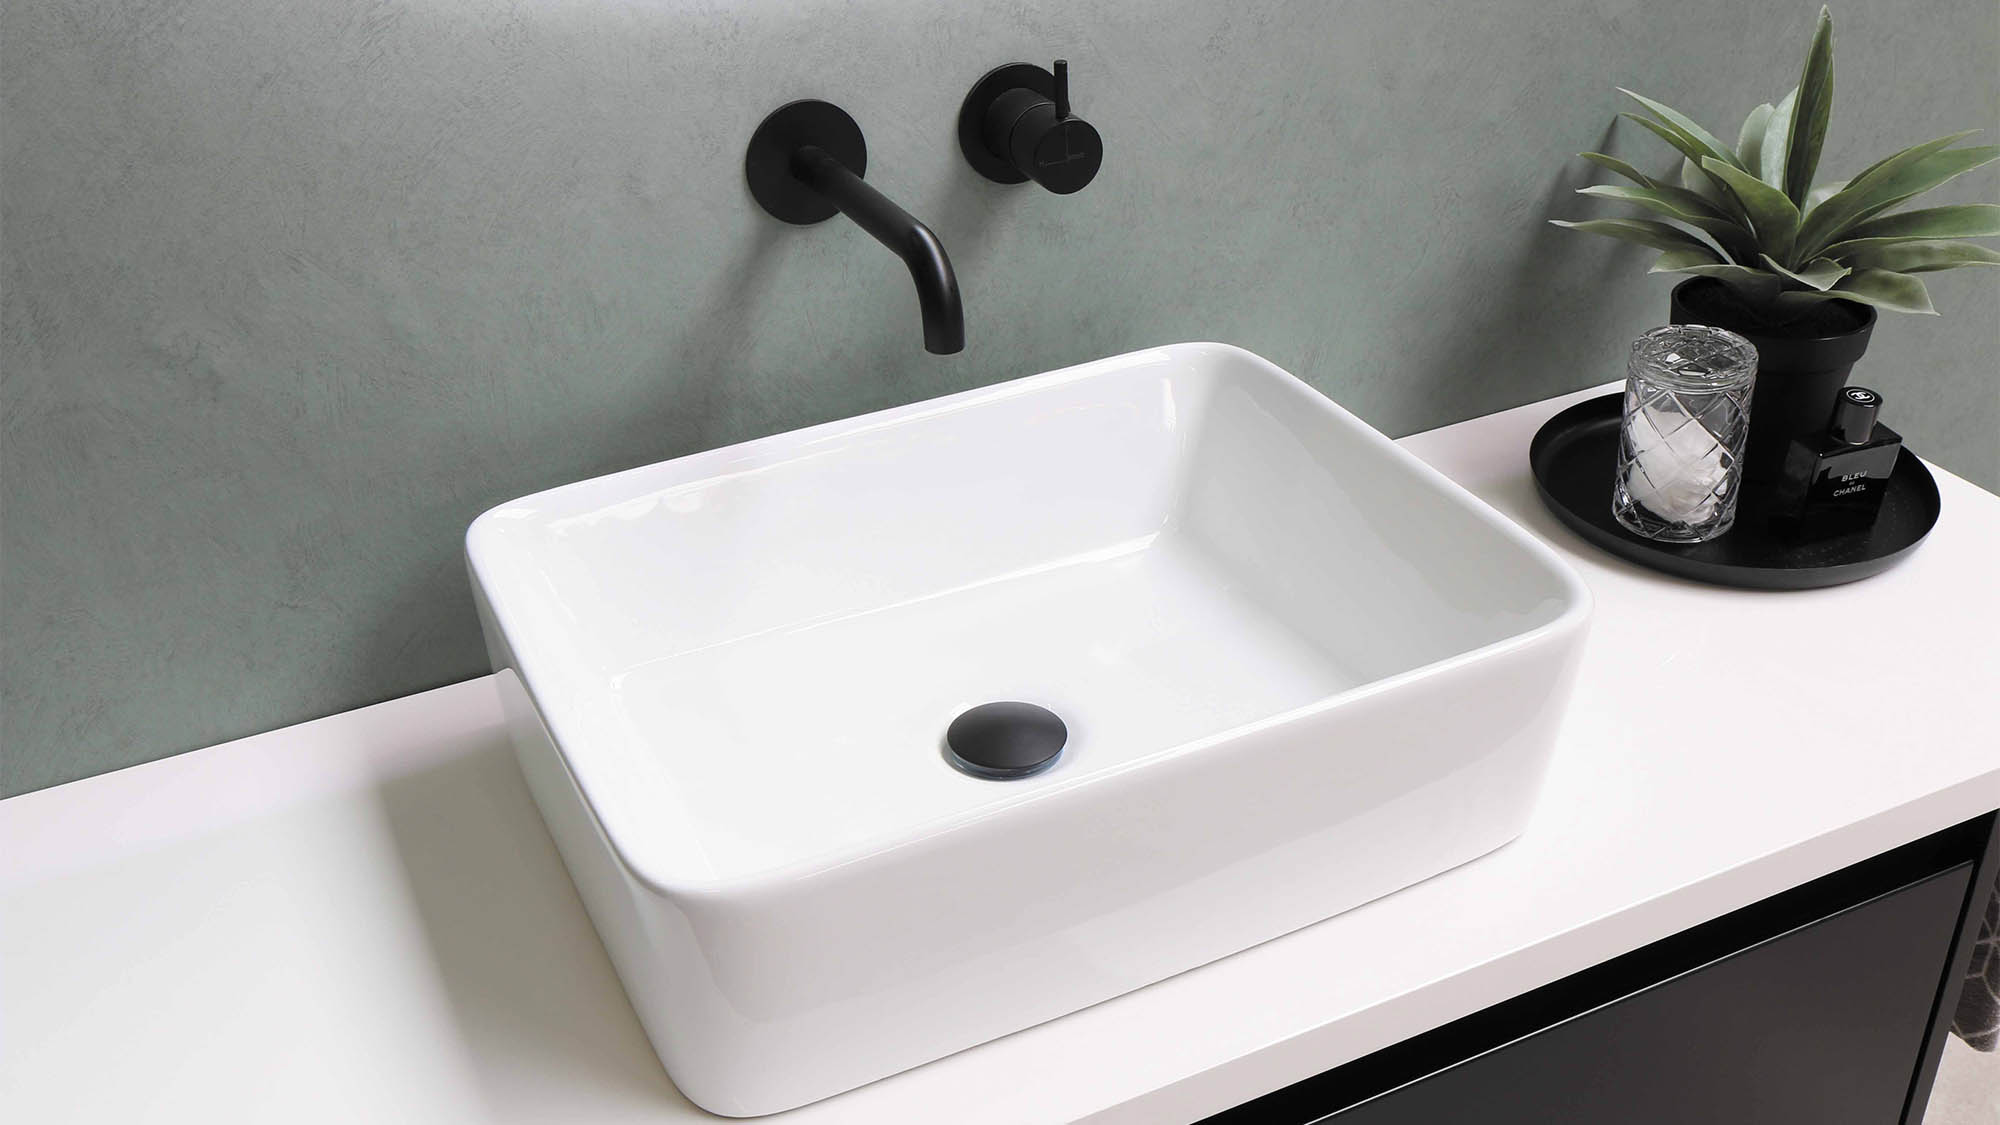 White bathroom sink with modern black wall faucet and succulent planter to the right